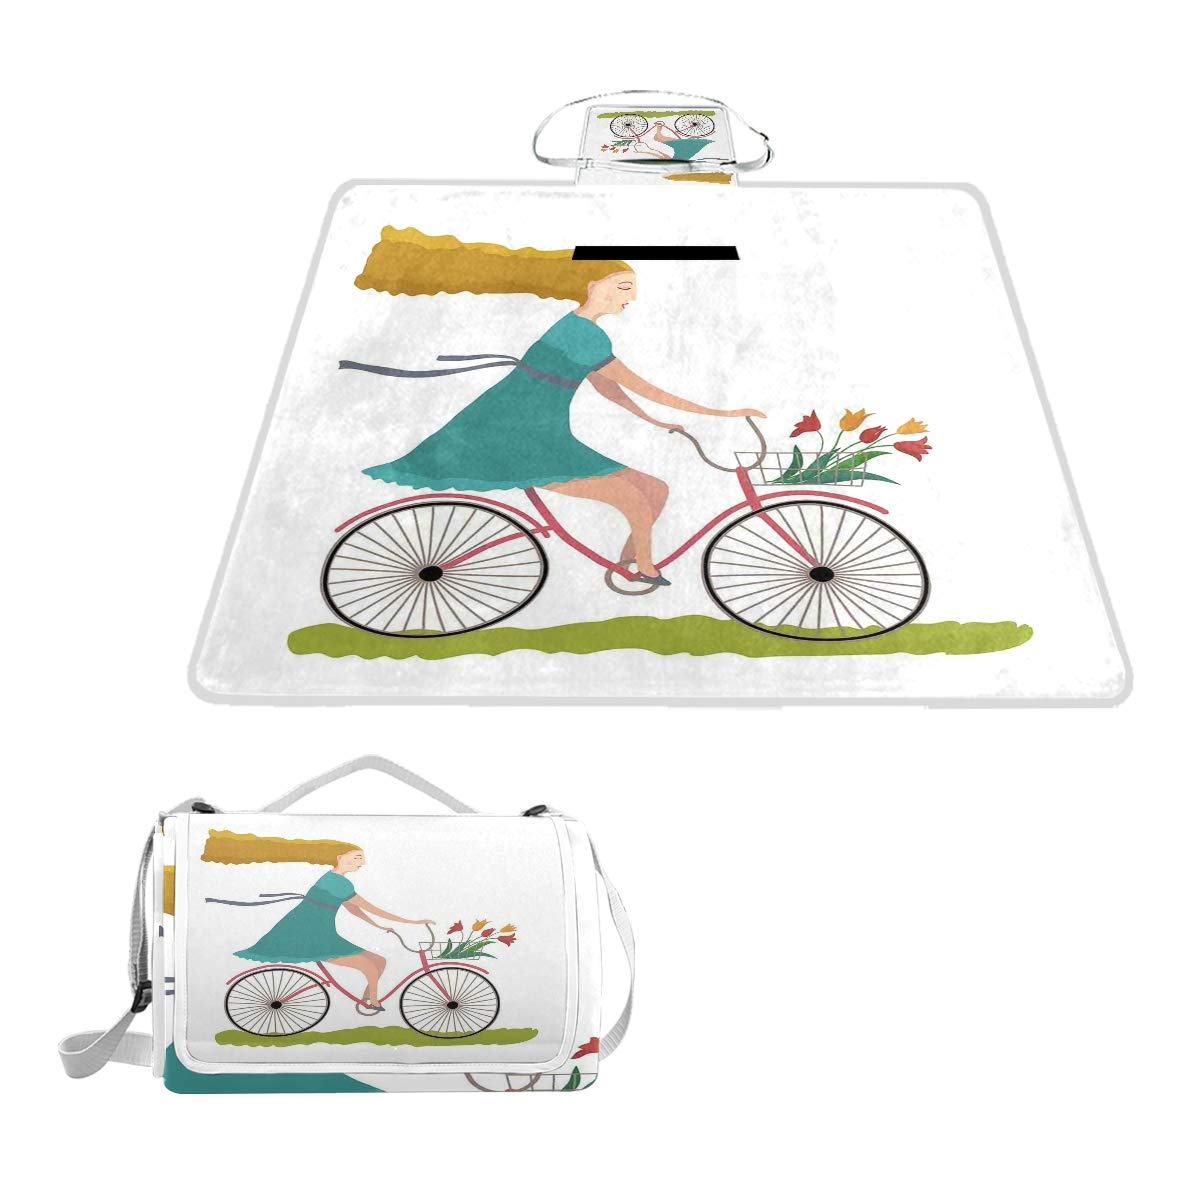 KVMV Young Woman On Bike with Basket of Tulip Flowers Riding The Spring Countryside Picnic Mat Sandproof and Waterproof Outdoor Picnic Blanket for Camping Hiking Beach Grass Travel by KVMV